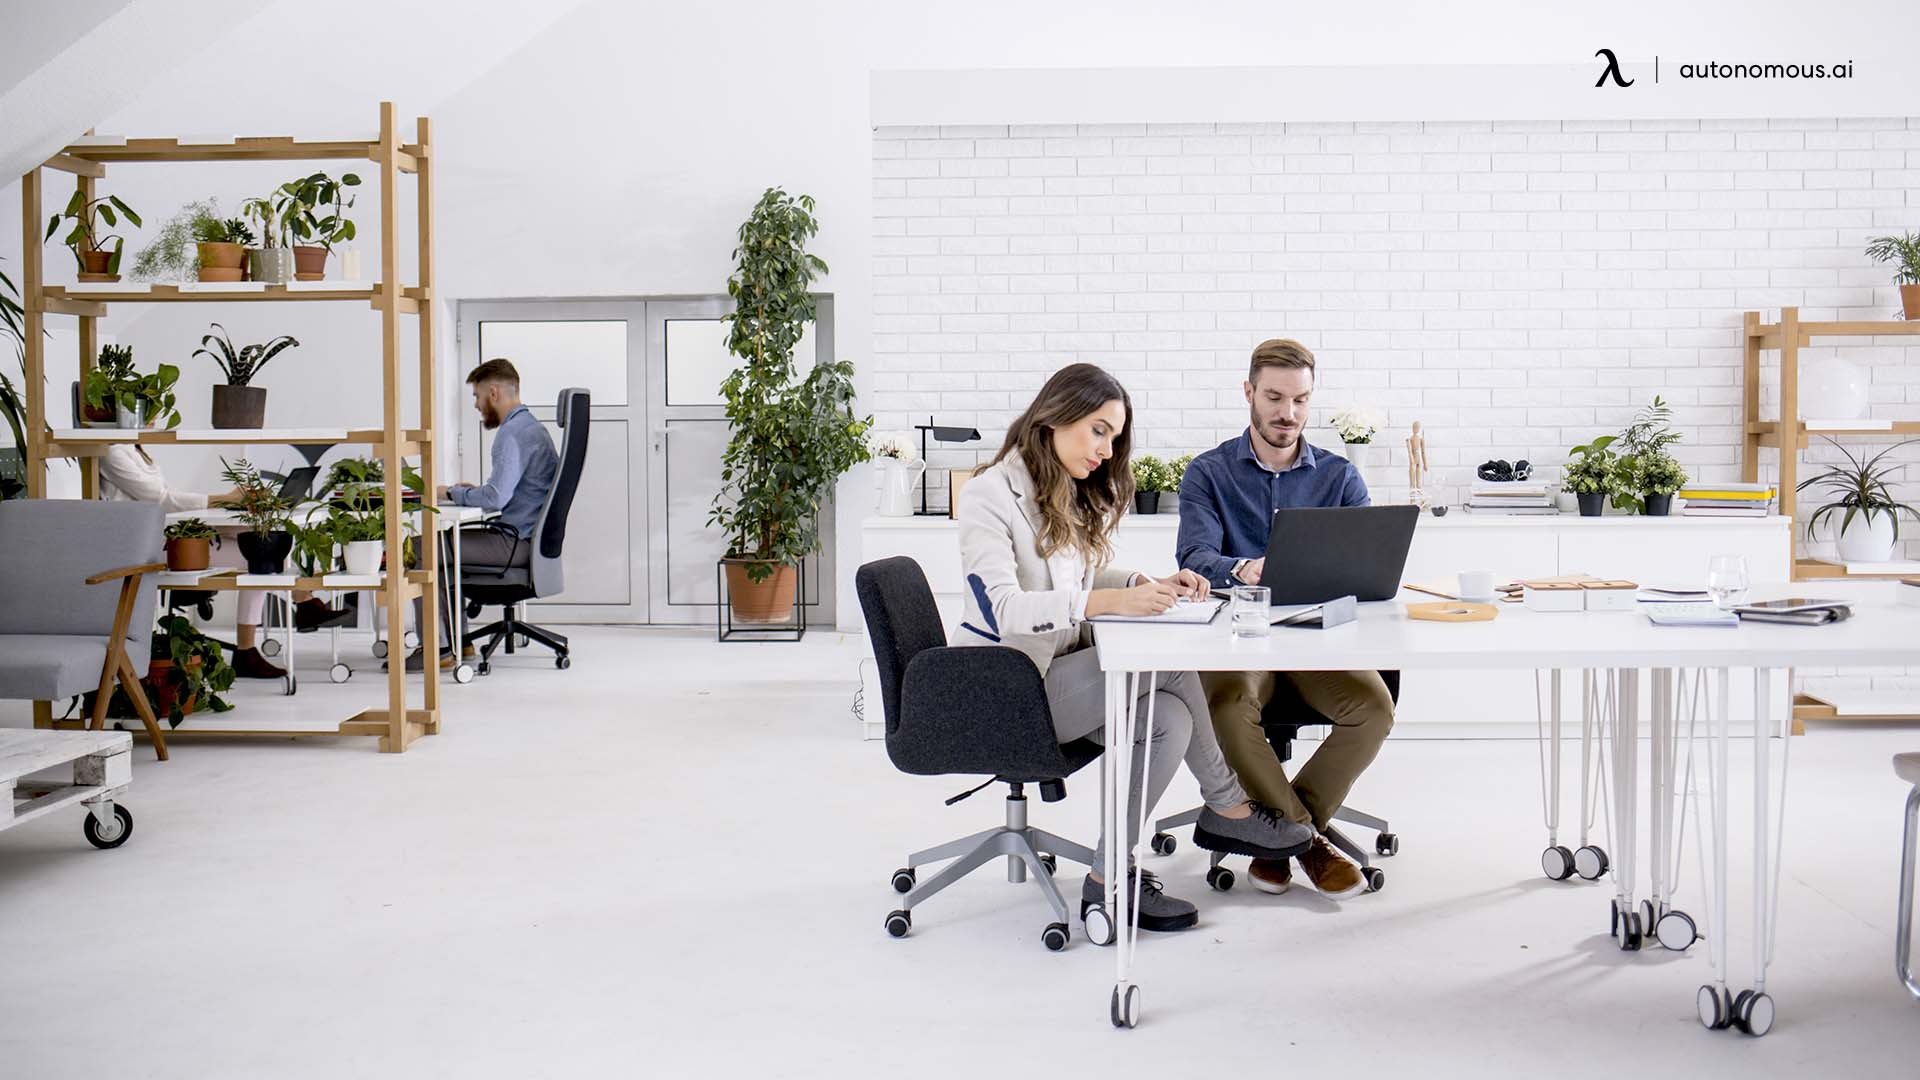 Changing office designs